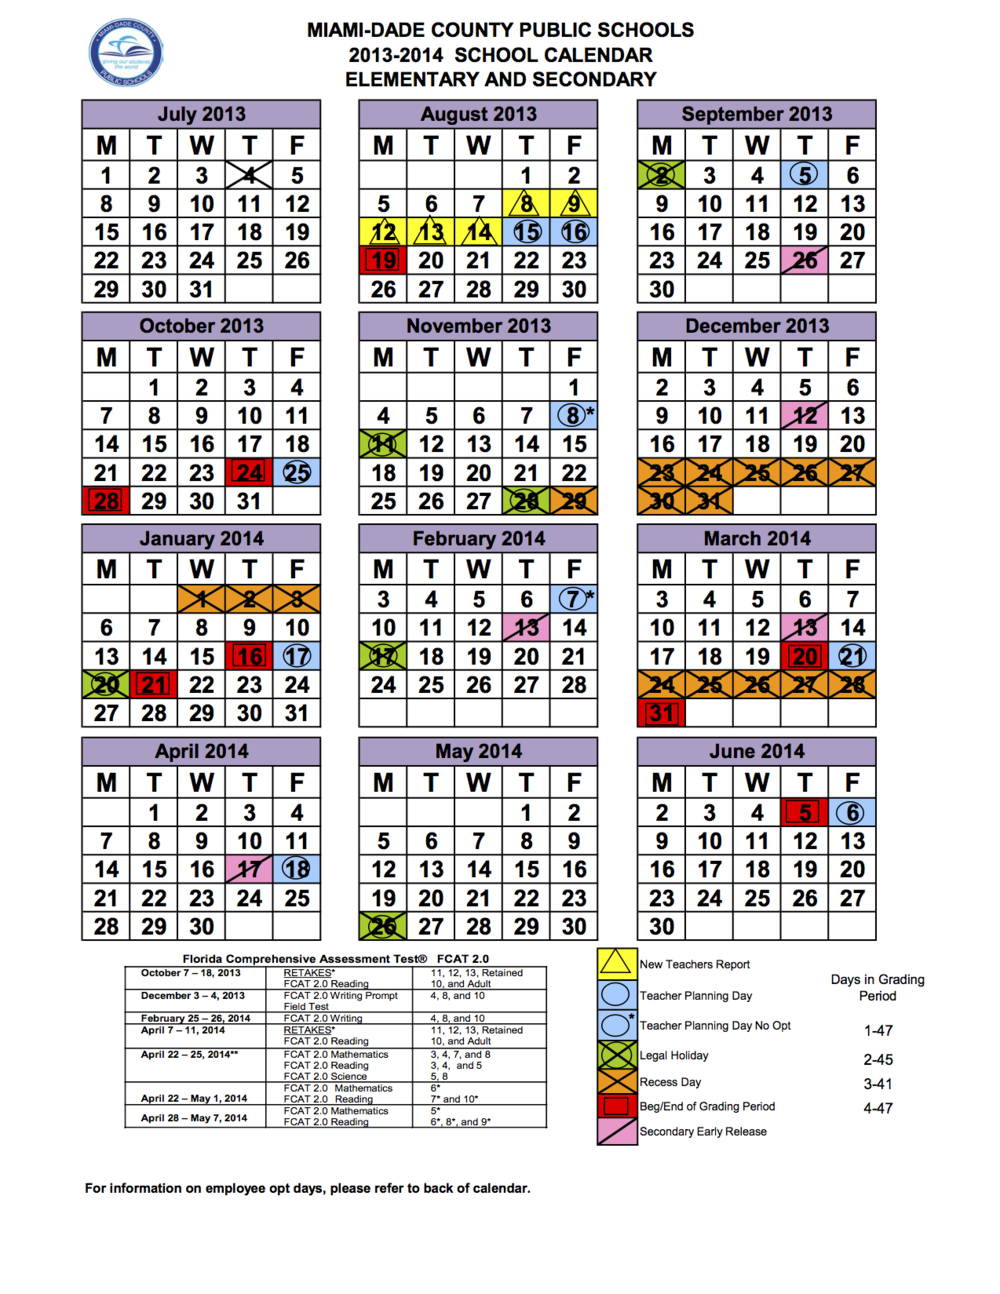 Please review our school calendar for any updates or changes.